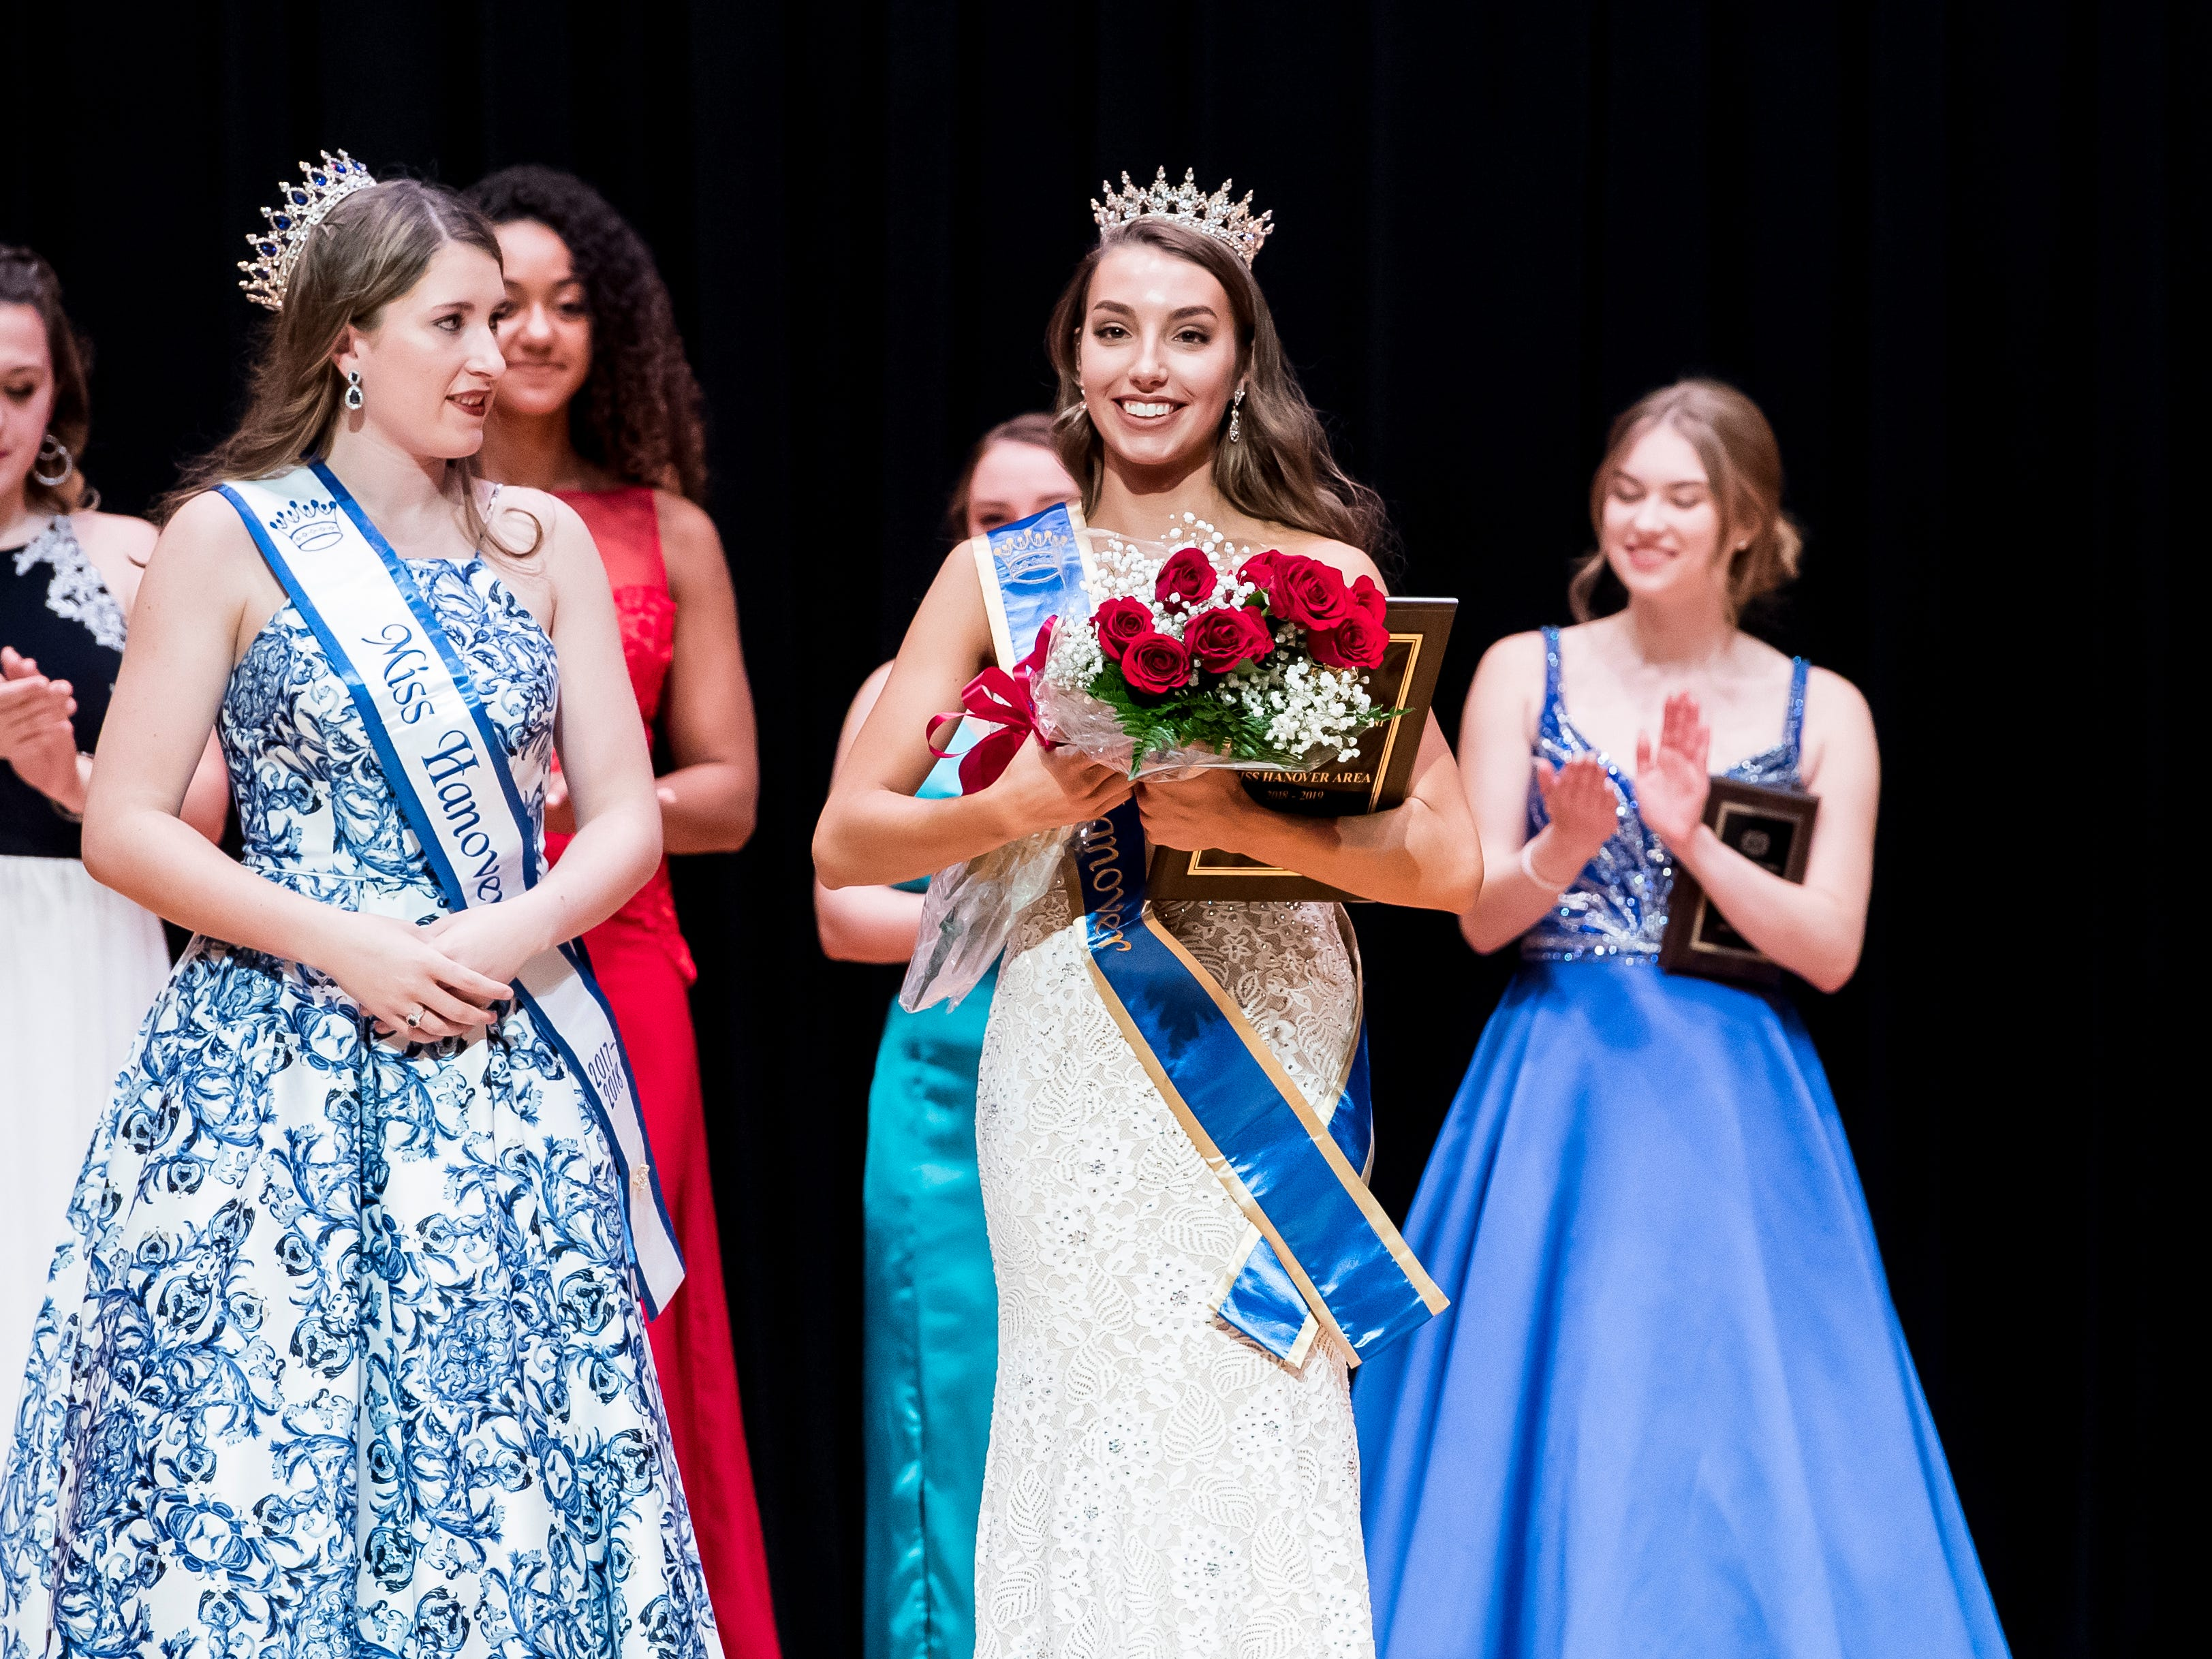 South Western's Madlyn Farley, right, smiles on stage after being crowned the 50th Miss Hanover Area on Monday, October 22, 2018.